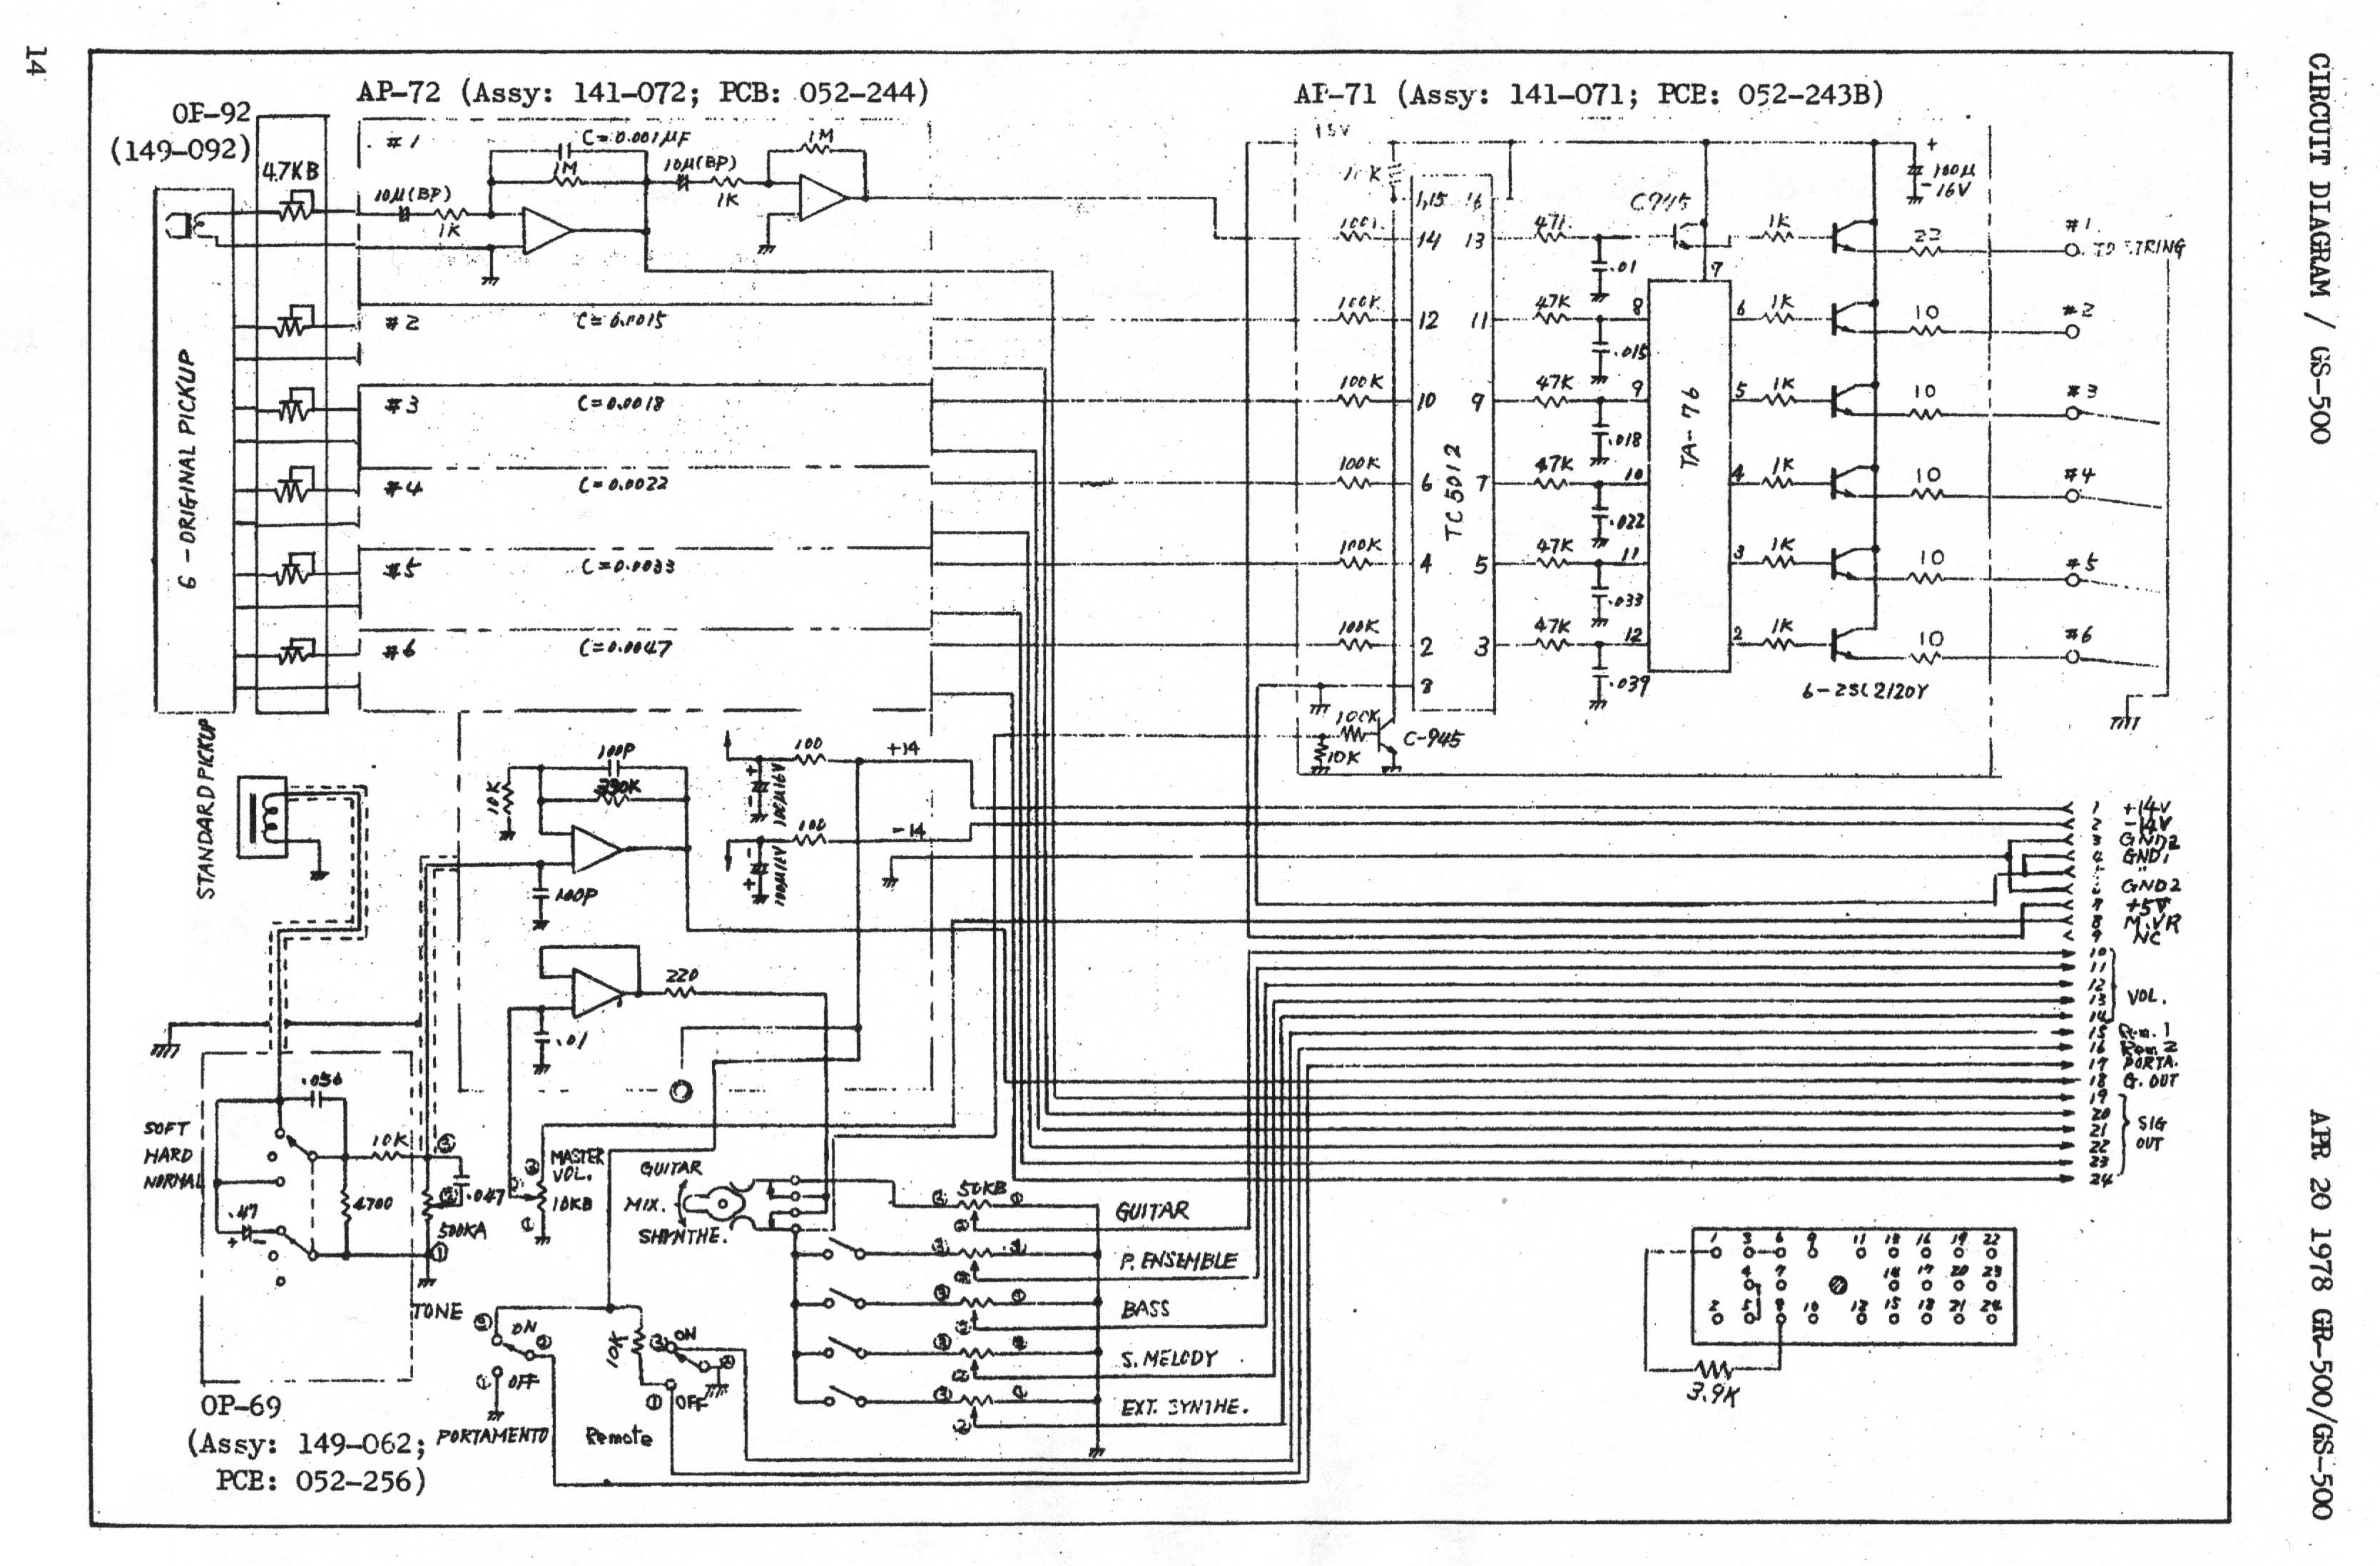 Download the GS-500 Schematic ...